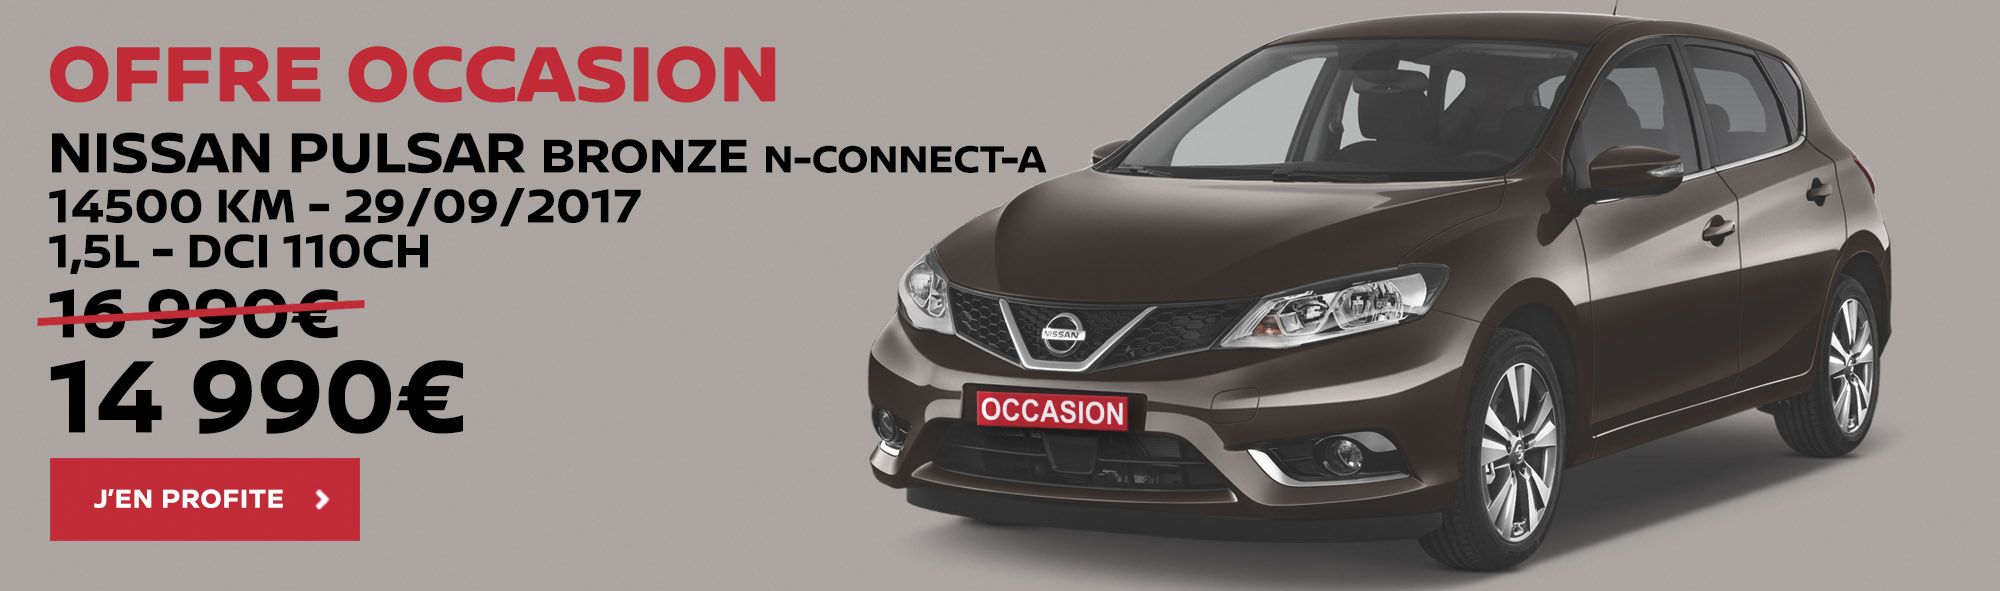 nissan troyes offre occasion pulsar bronze